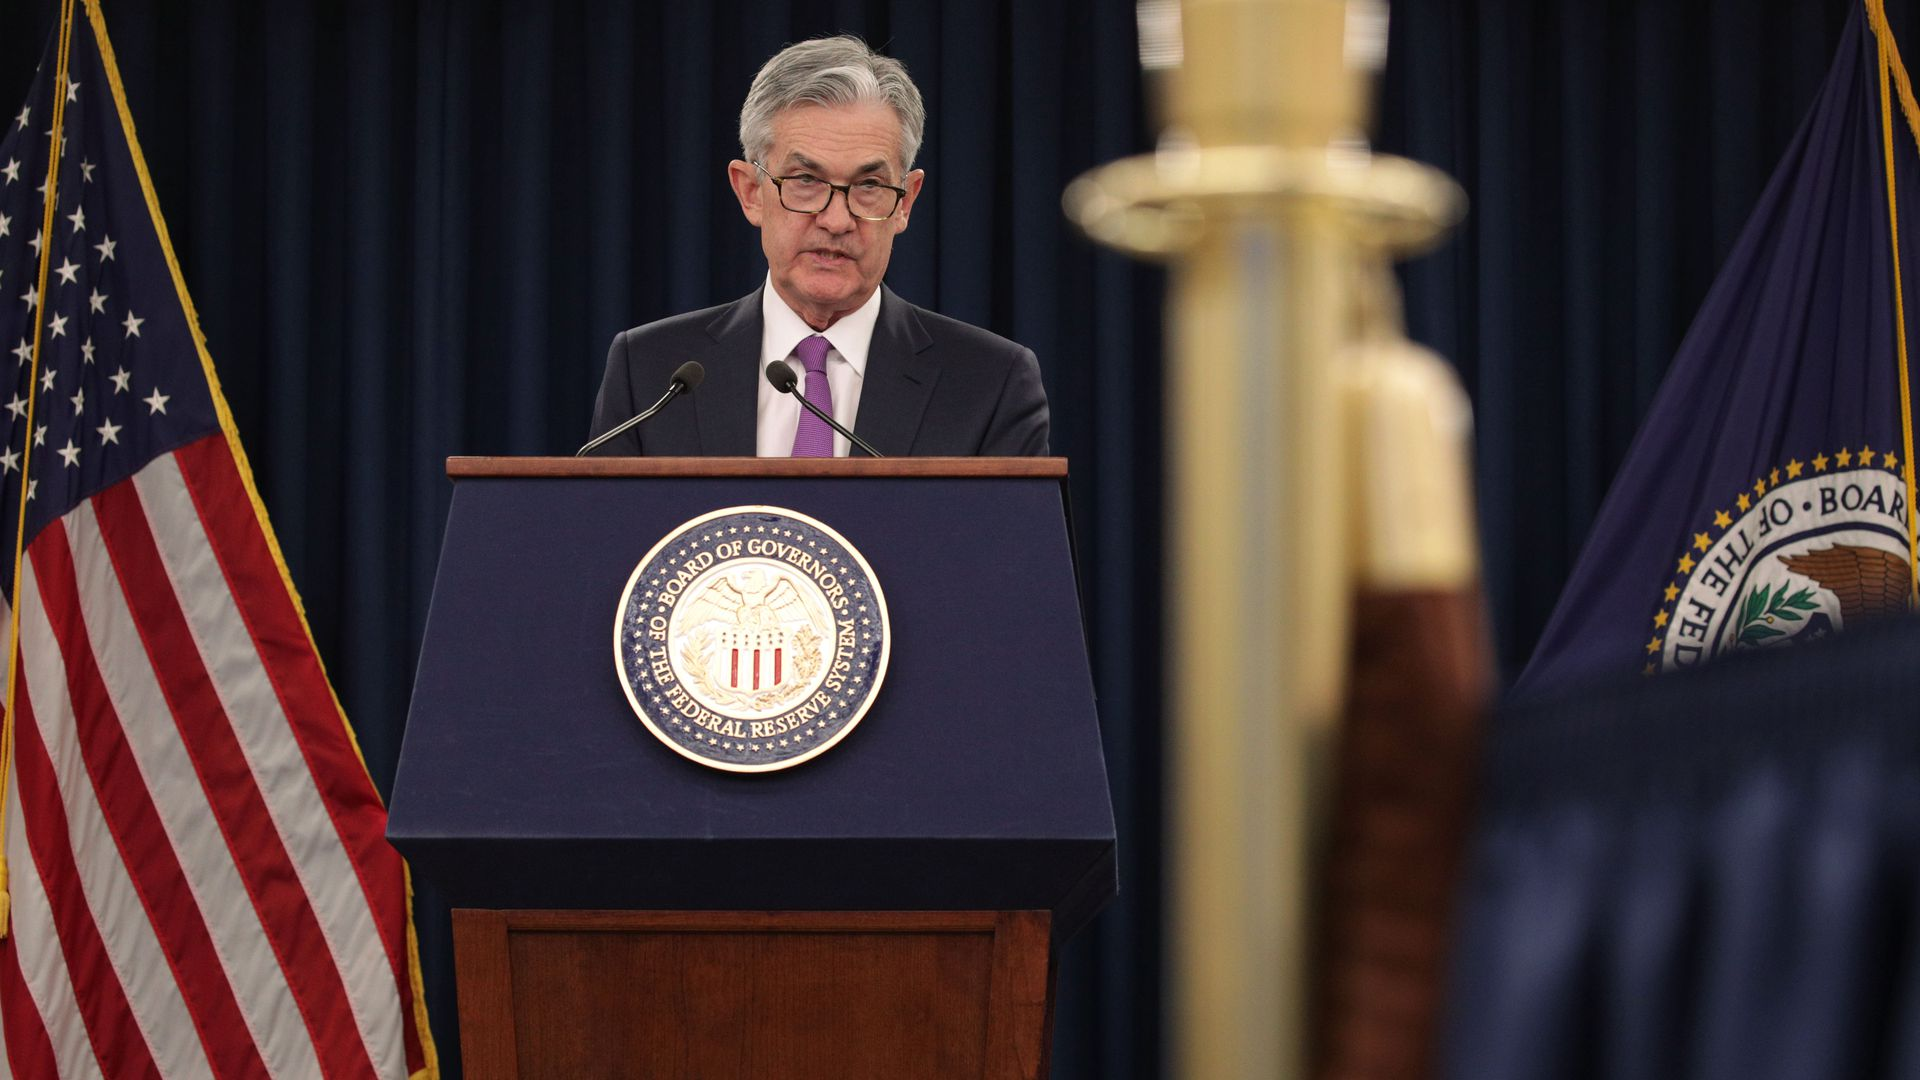 Fed chair jay powell at a press conference